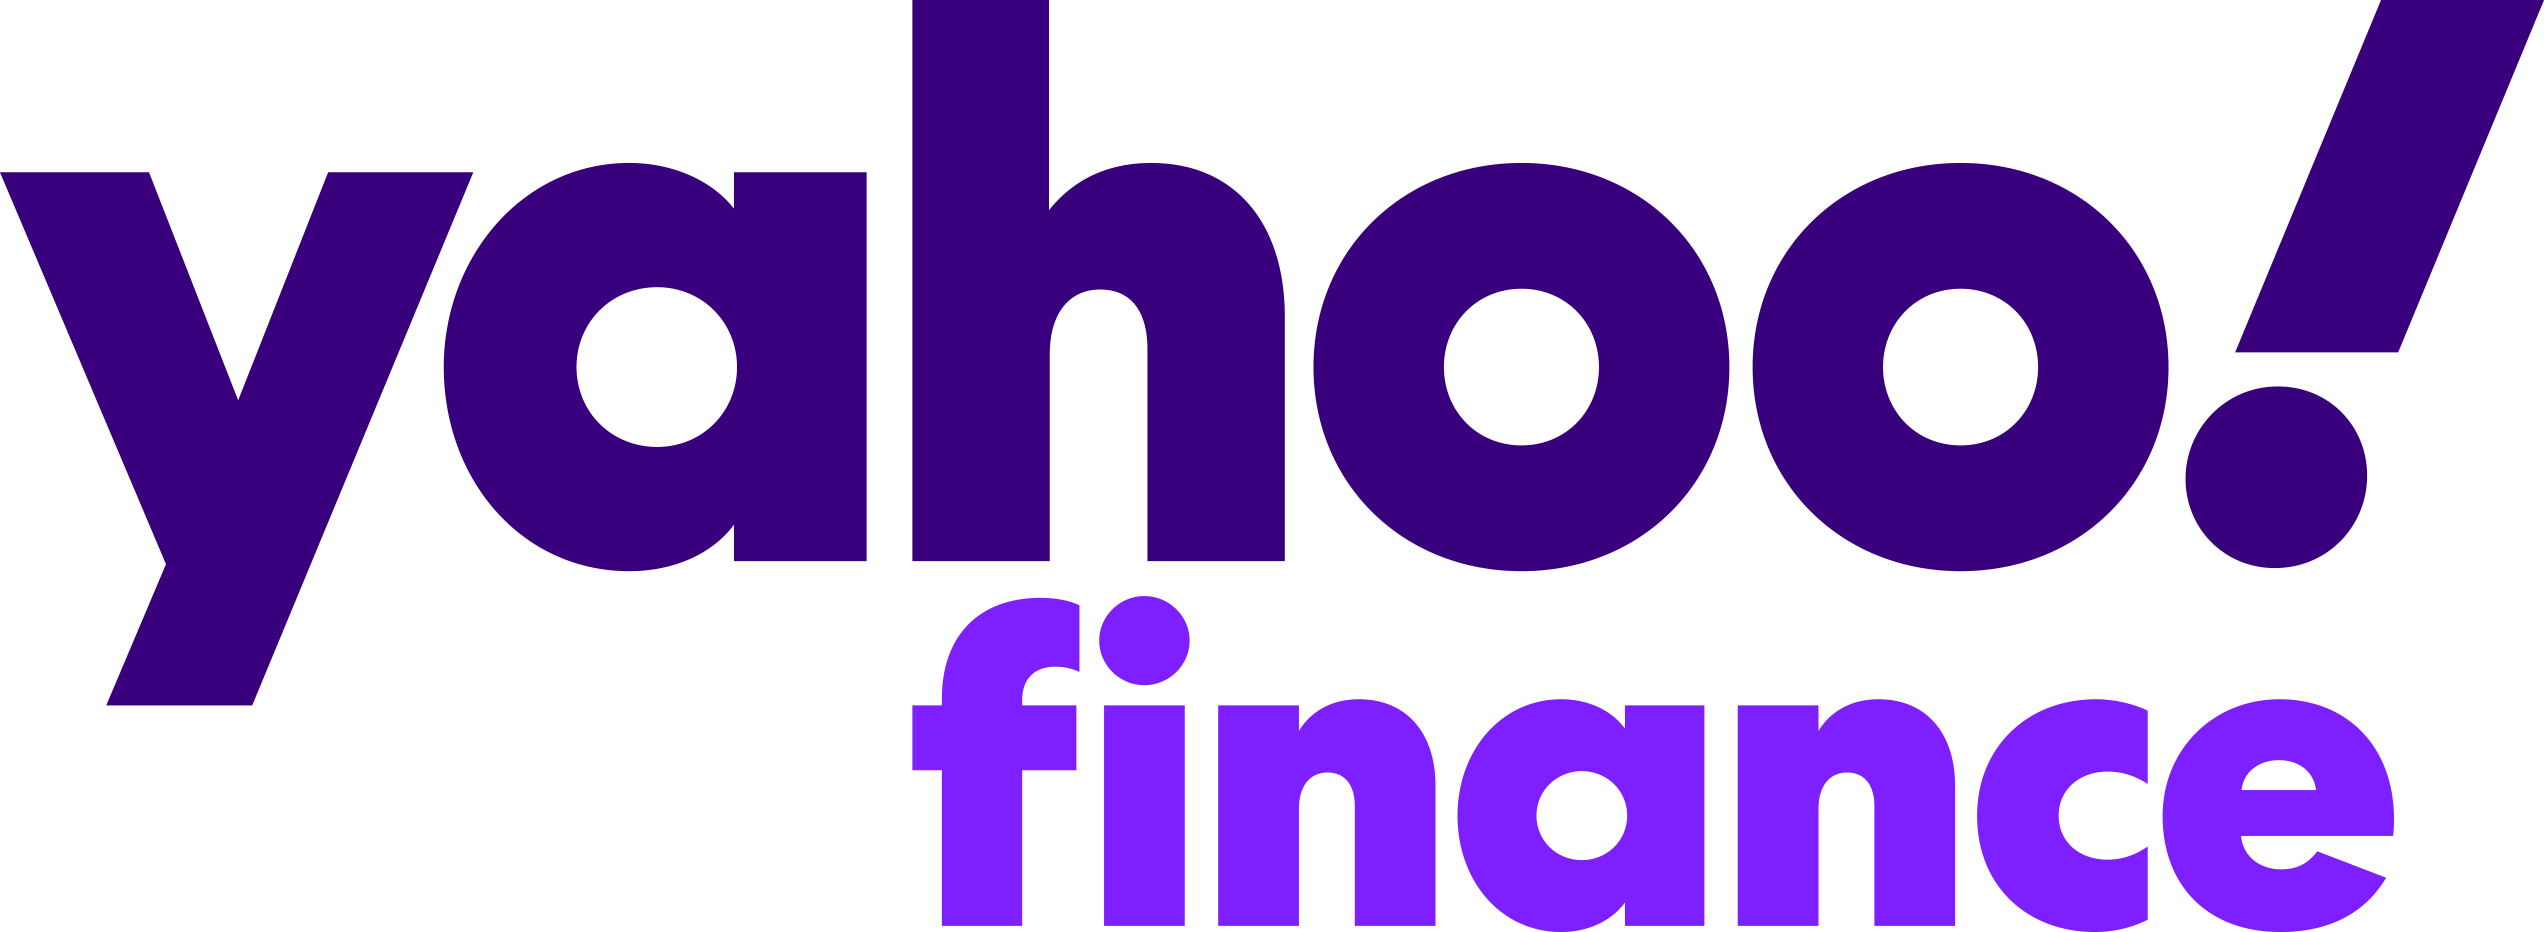 Powered by Yahoo Finance